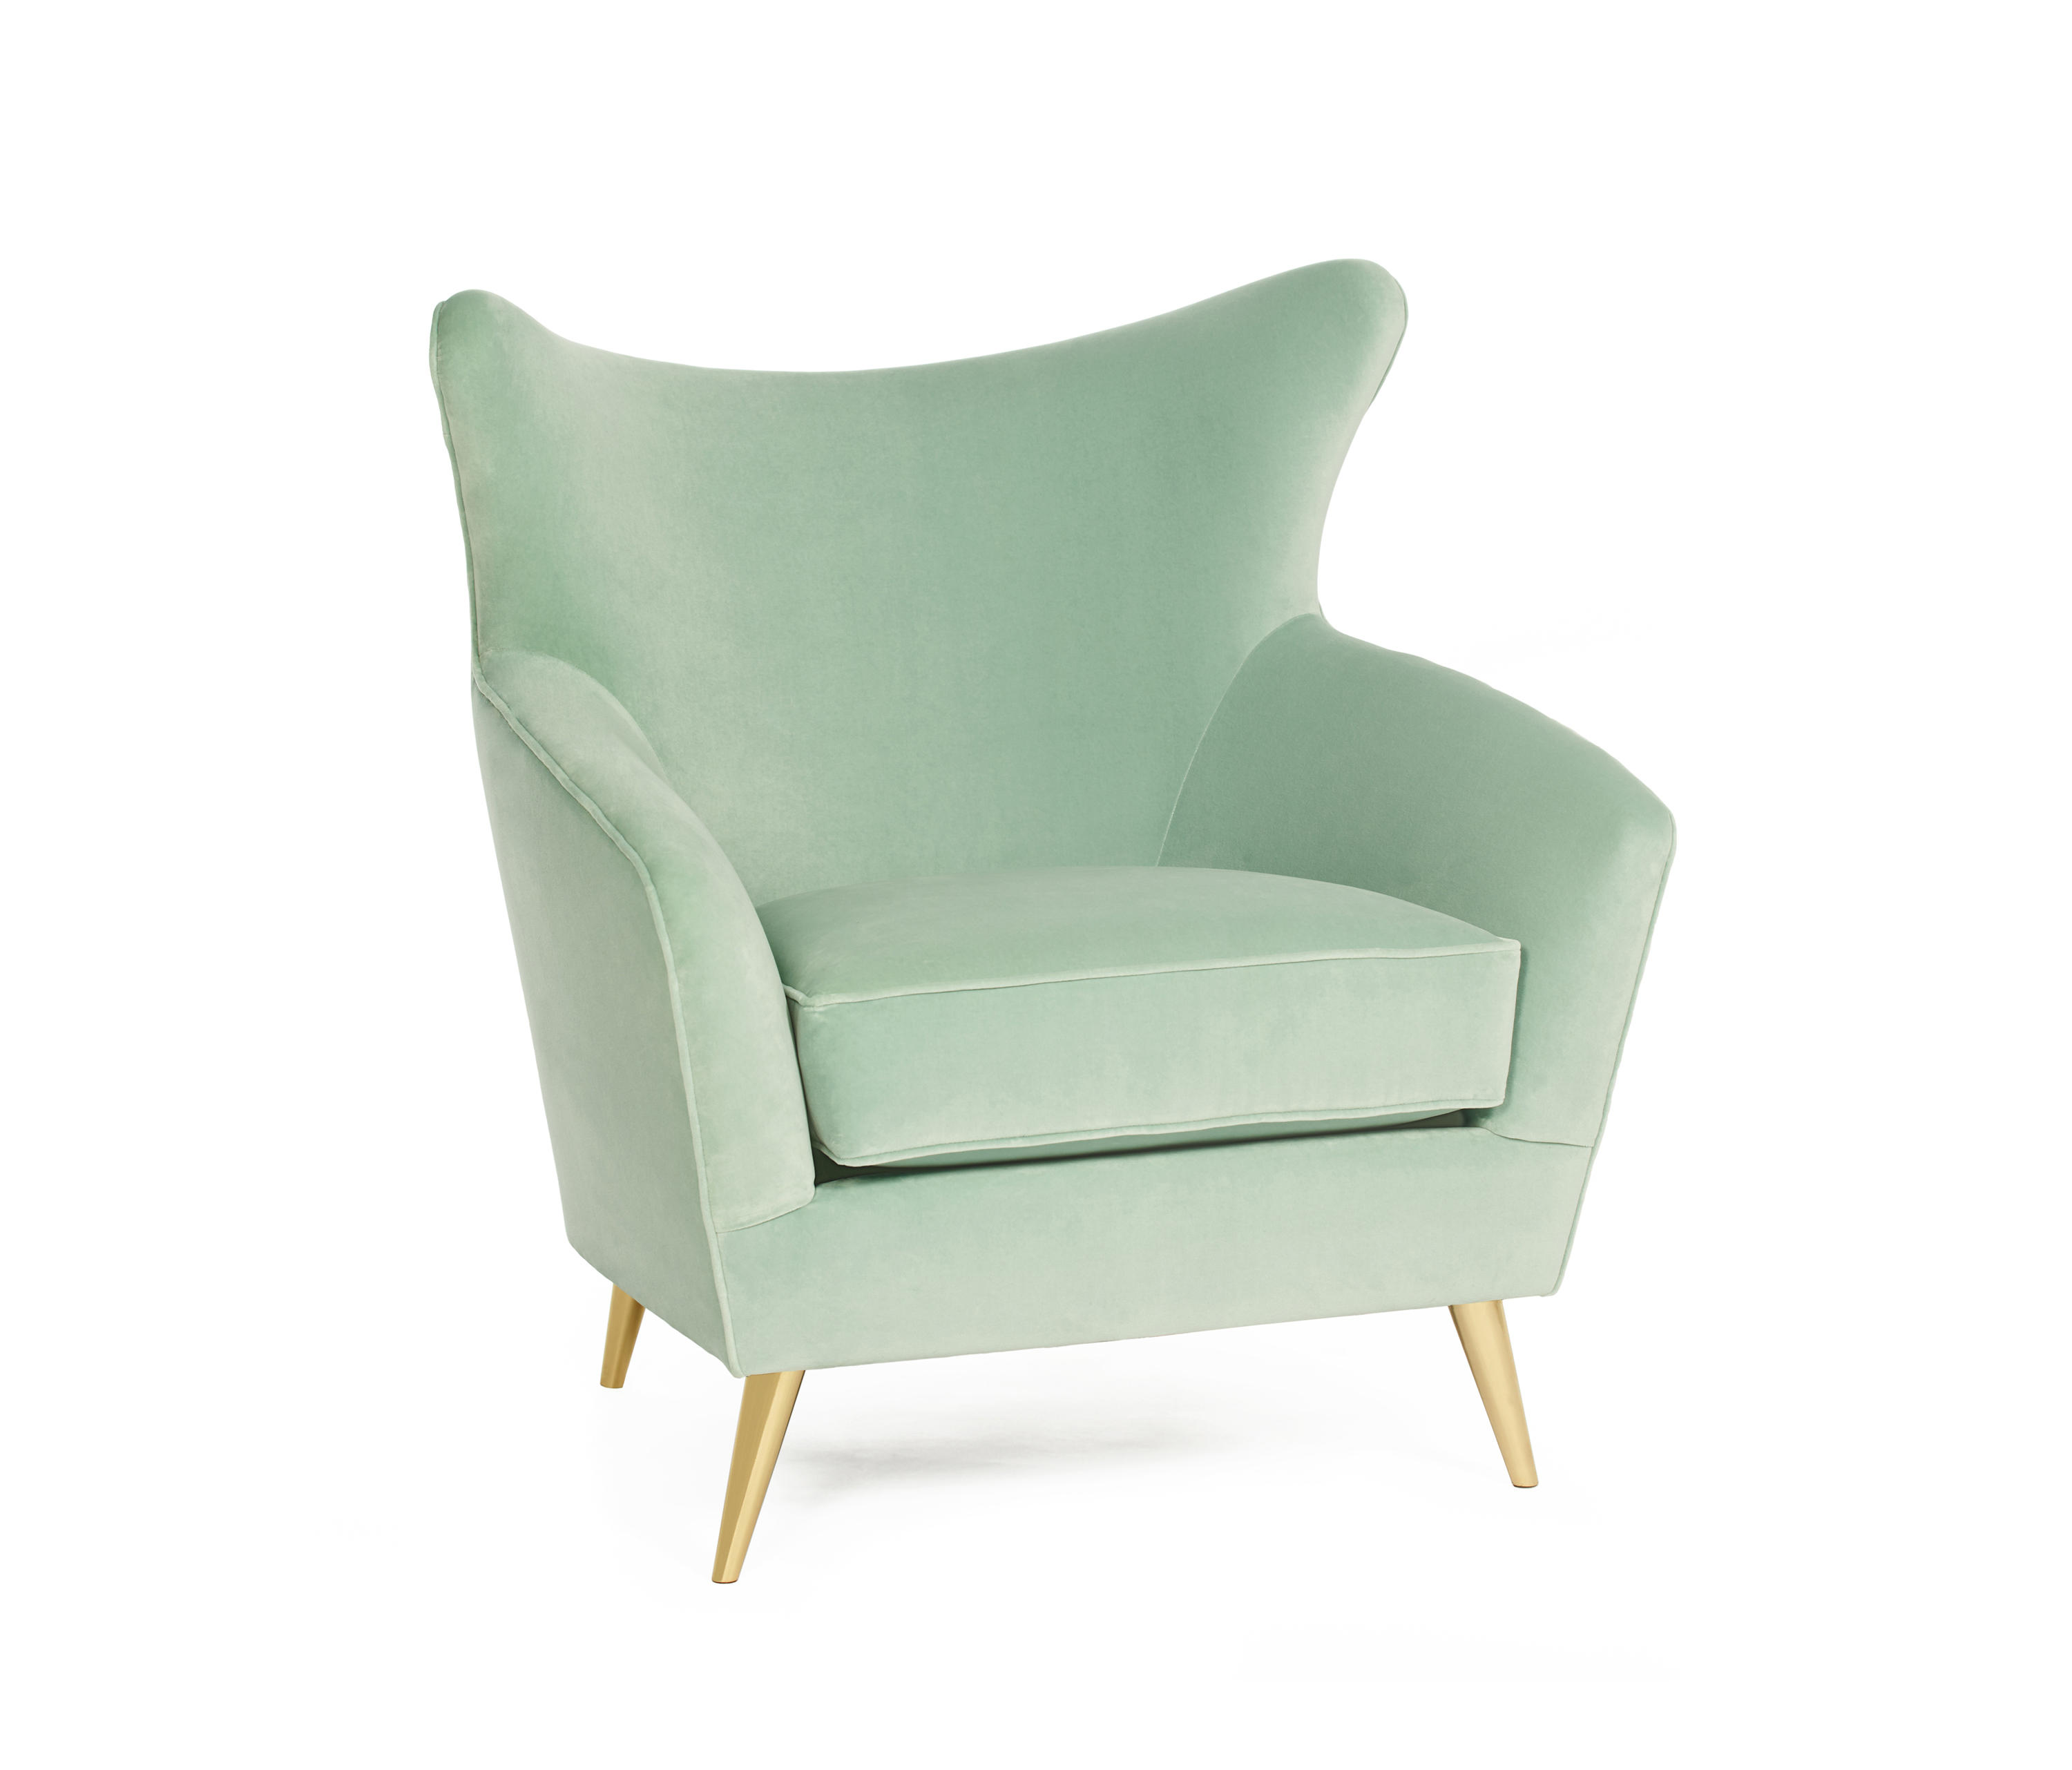 Sophia | Armchair by MUNNA | Armchairs ...  sc 1 st  Architonic & SOPHIA | ARMCHAIR - Armchairs from MUNNA | Architonic